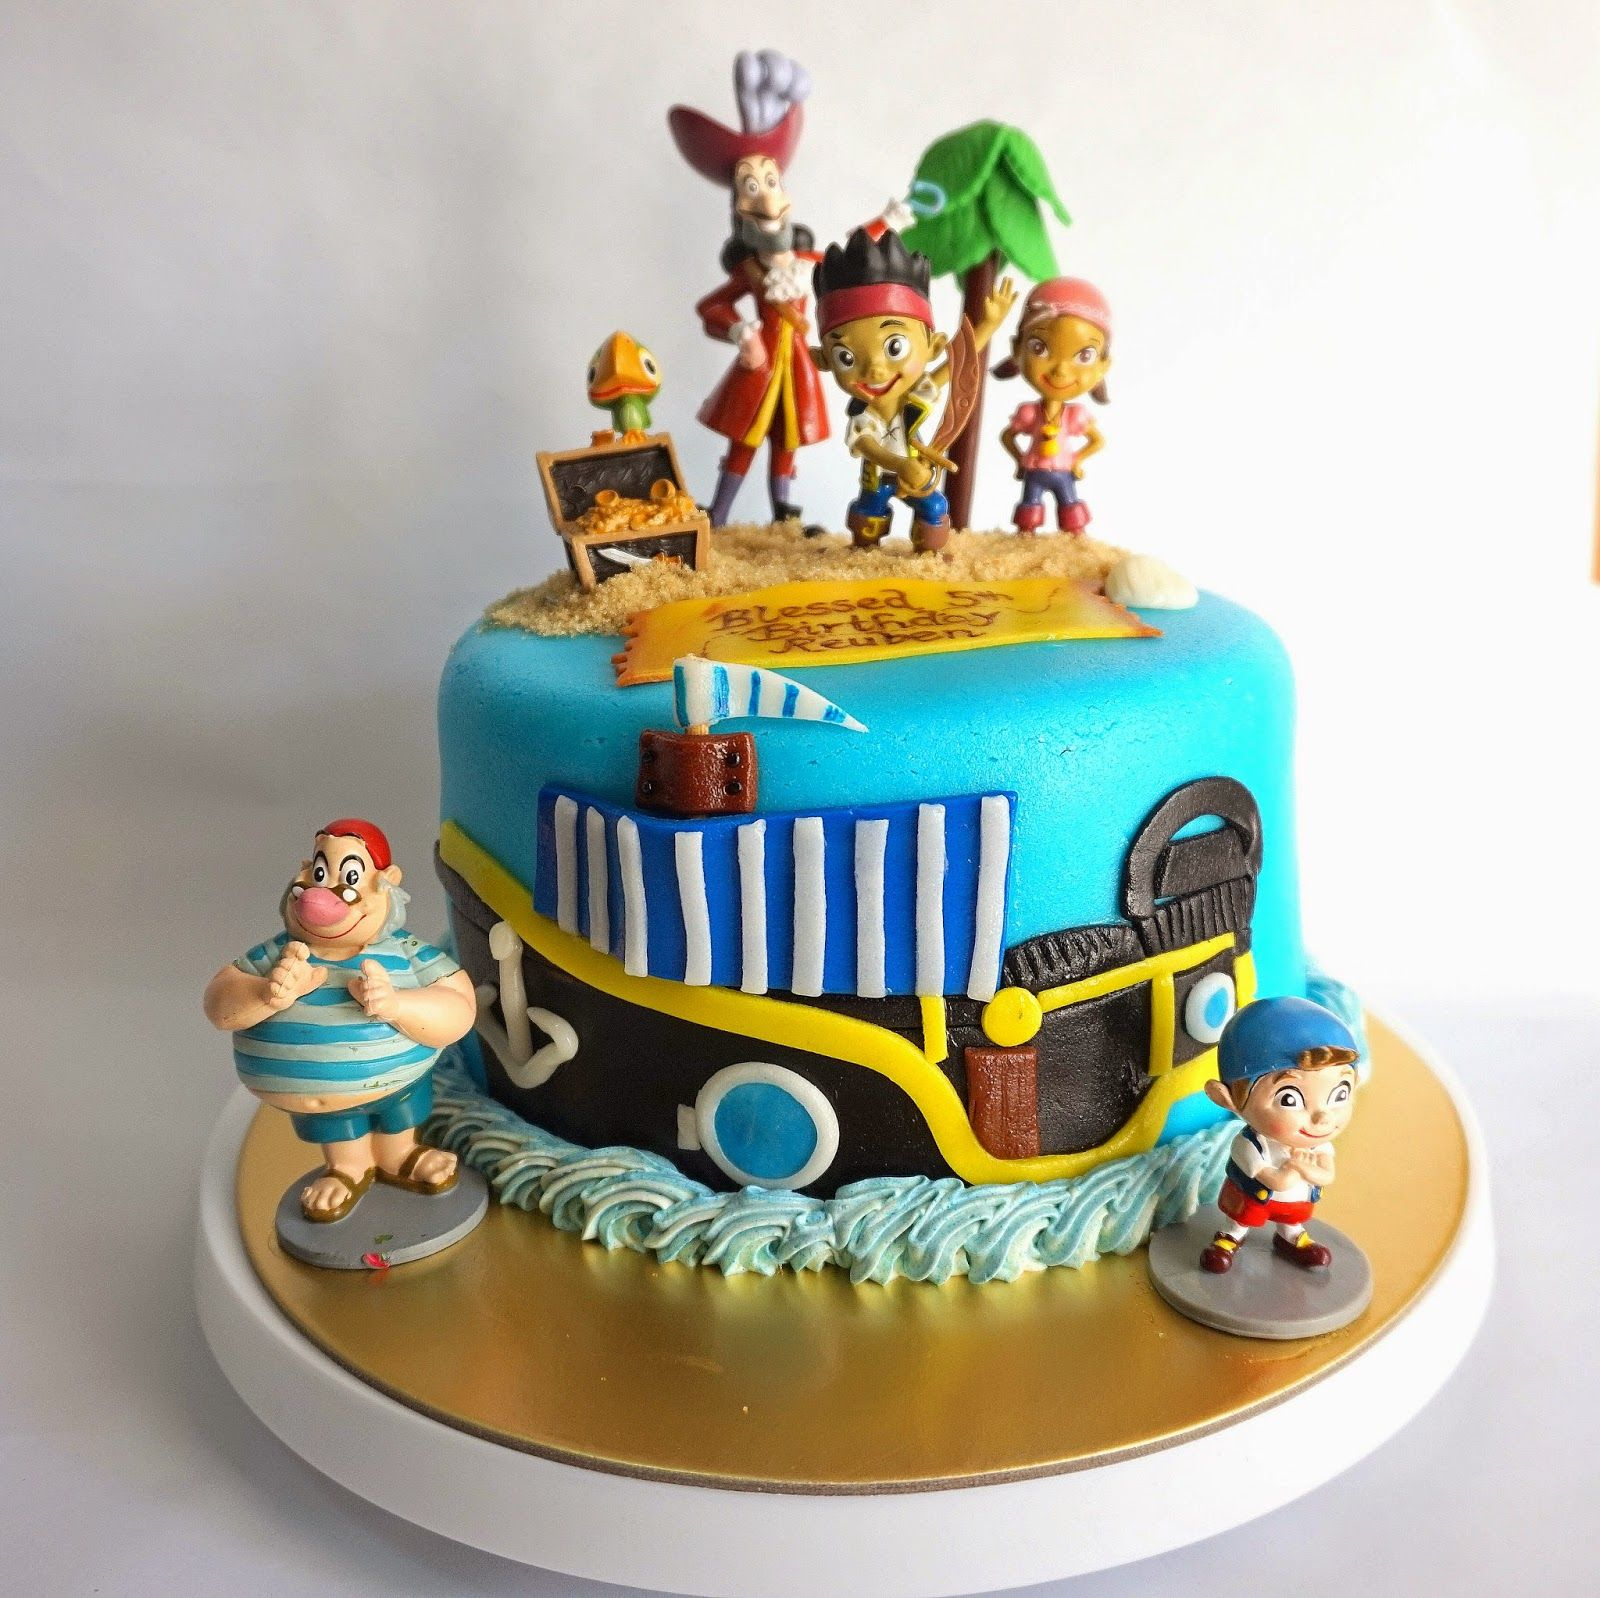 Astounding Jack And The Neverland Pirates Themed Cake Themed Cakes Island Funny Birthday Cards Online Inifodamsfinfo